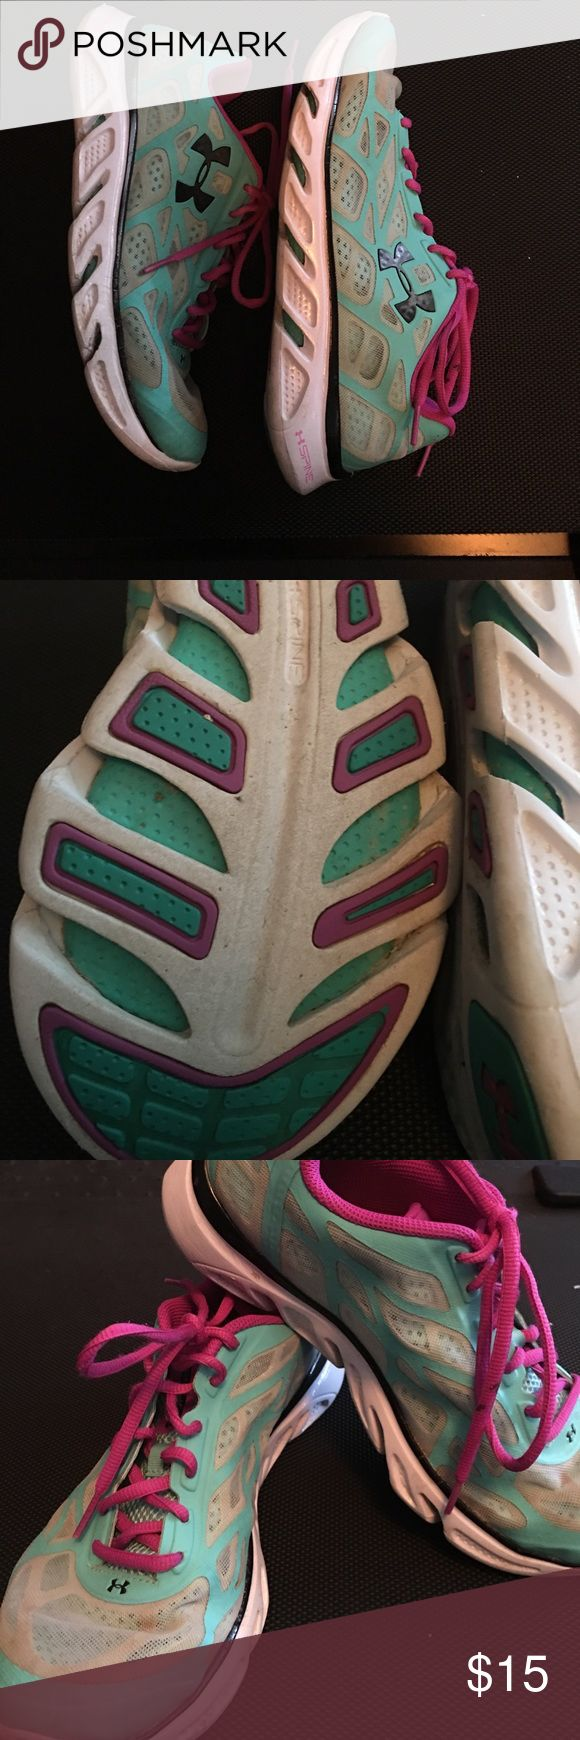 Women's Under Amour running shoes Lightly used Womens Under Armour running shoes. Mint blue with fuchsia trim and laces. Lightest shoes ever! Under Armour Shoes Sneakers